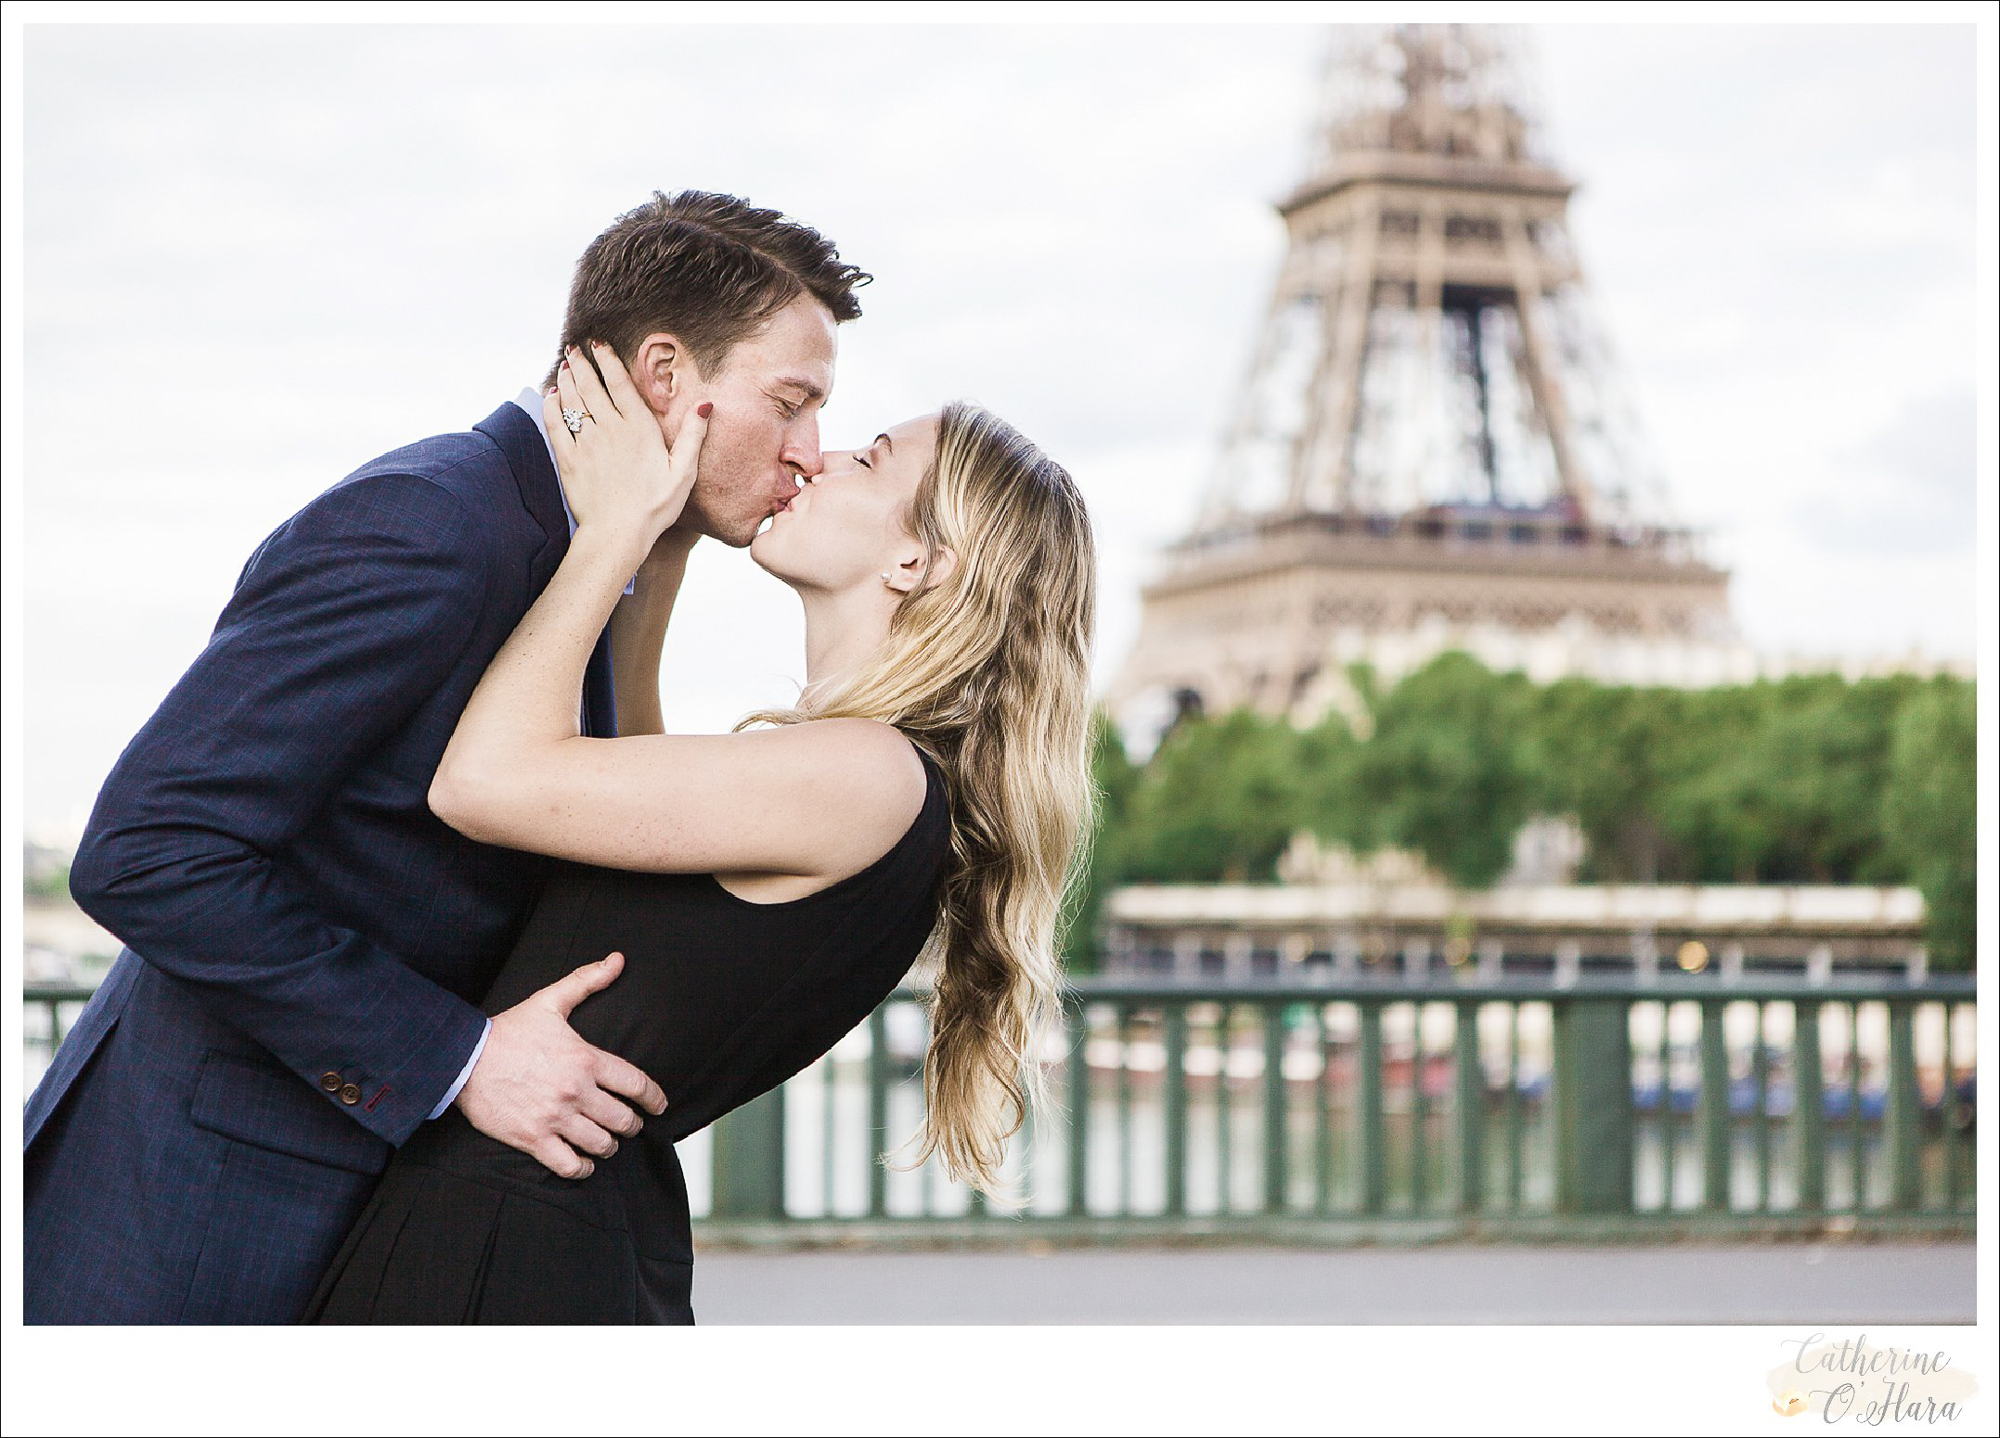 surprise proposal engagement photographer paris france-03.jpg